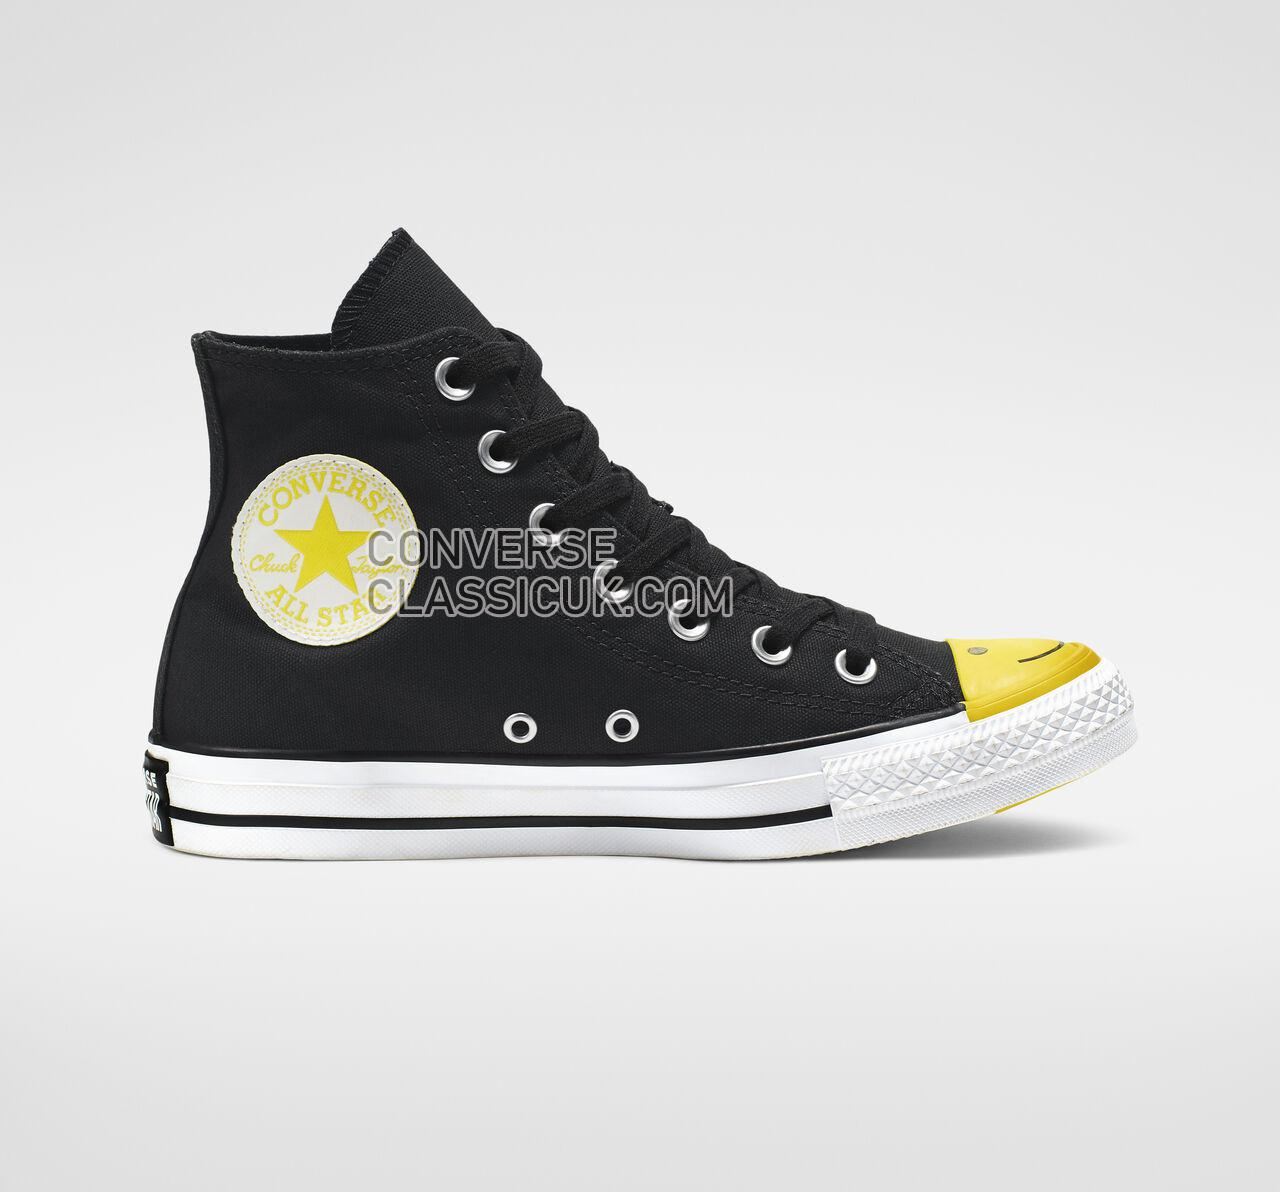 Converse Chuck Taylor All Star Carnival Colorblock High Top Mens Womens Unisex 164423C Black/Fresh Yellow/White Shoes